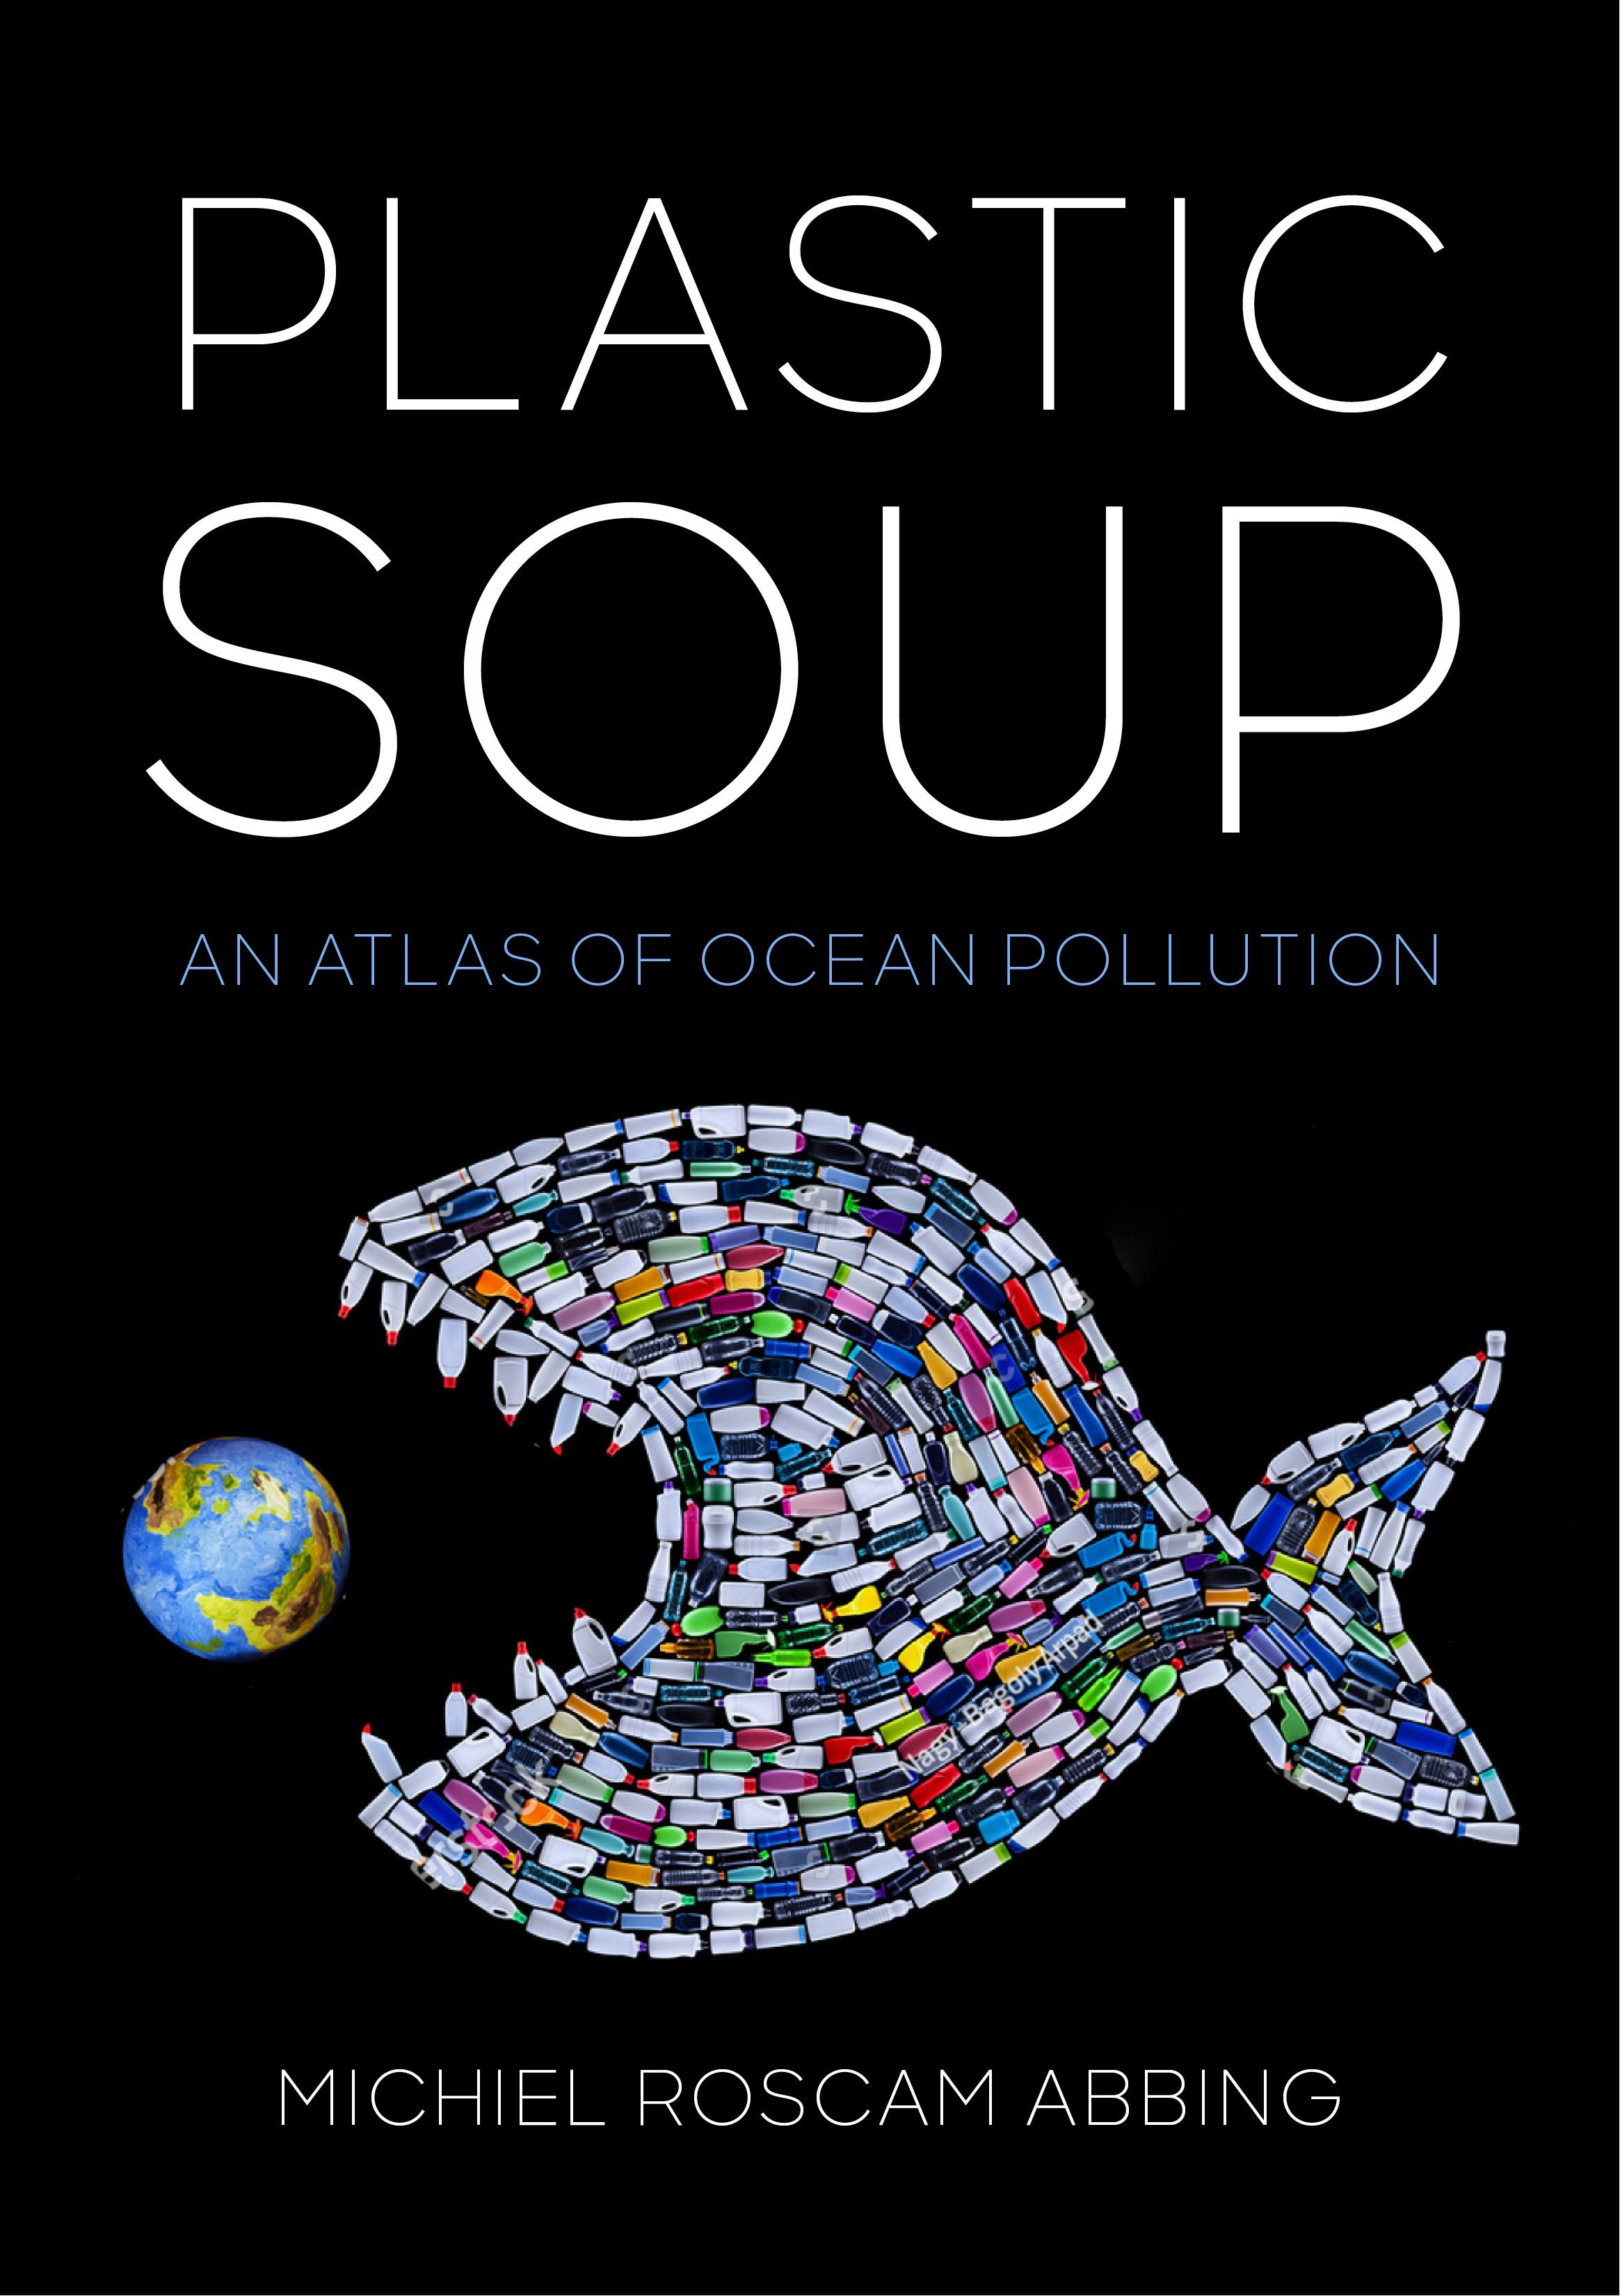 Plastic Soup Atlas of the World: reprint and international